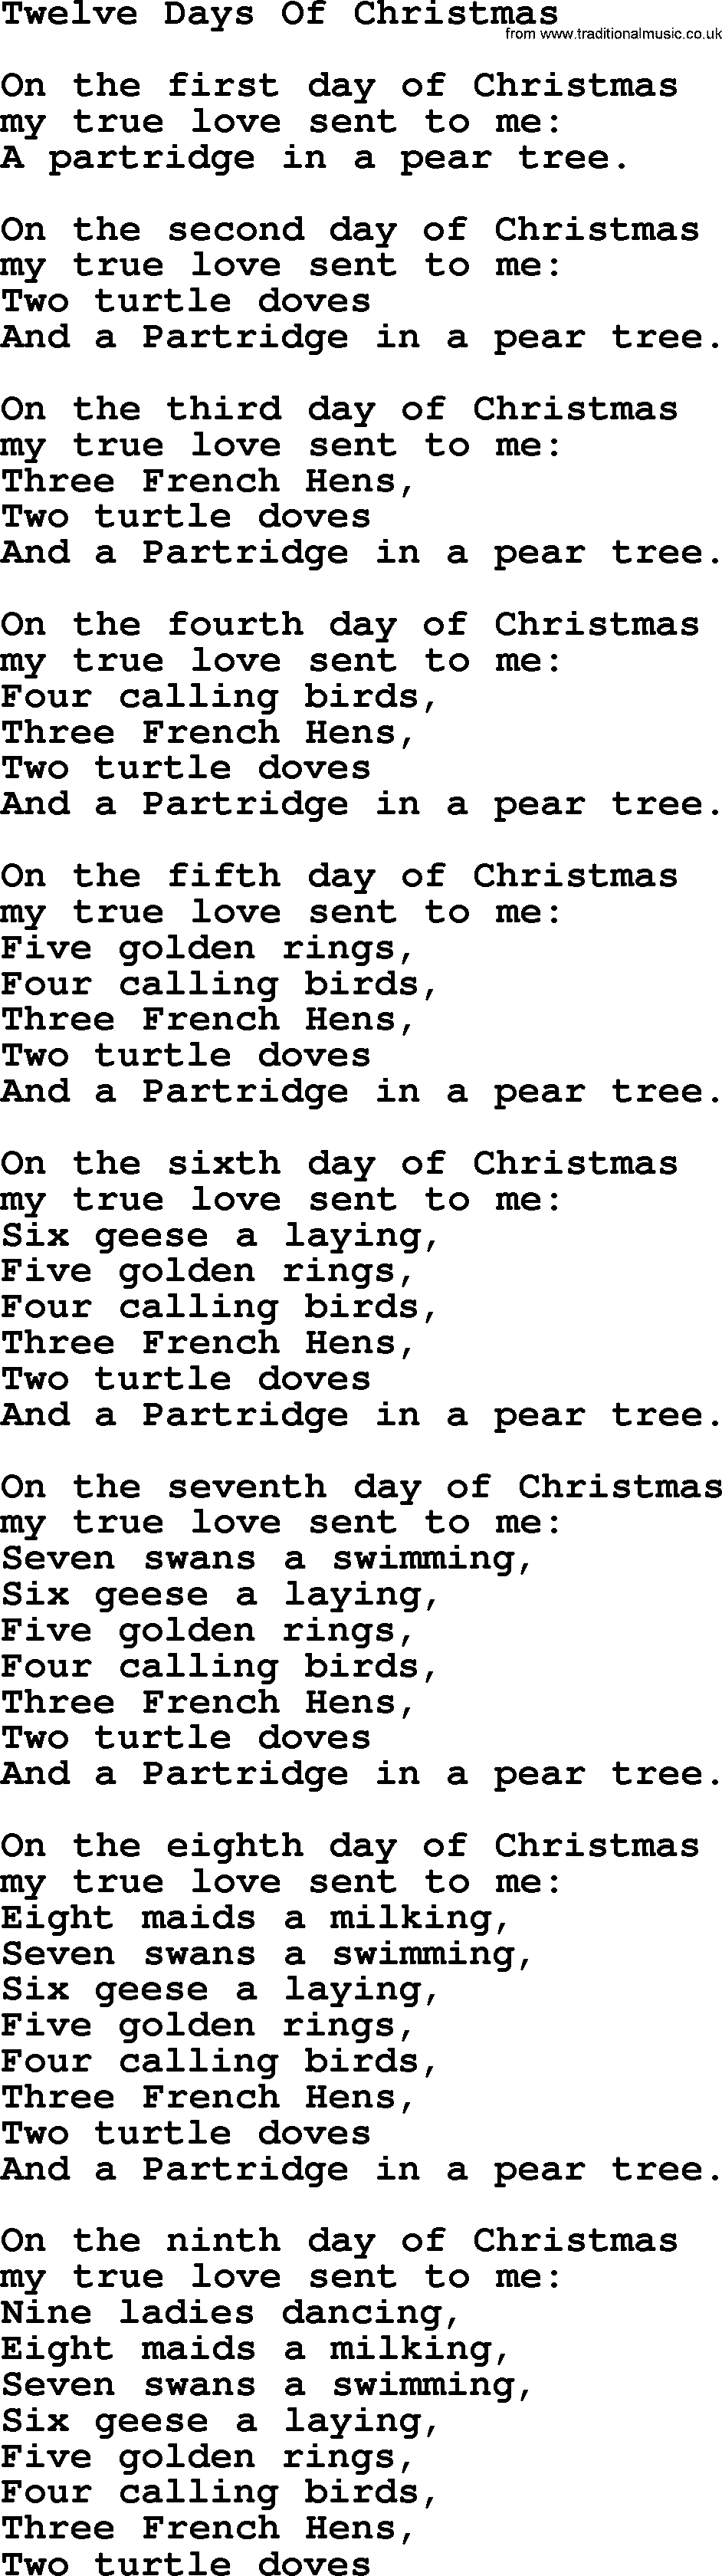 Catholic Hymns, Song: Twelve Days Of Christmas - lyrics and PDF